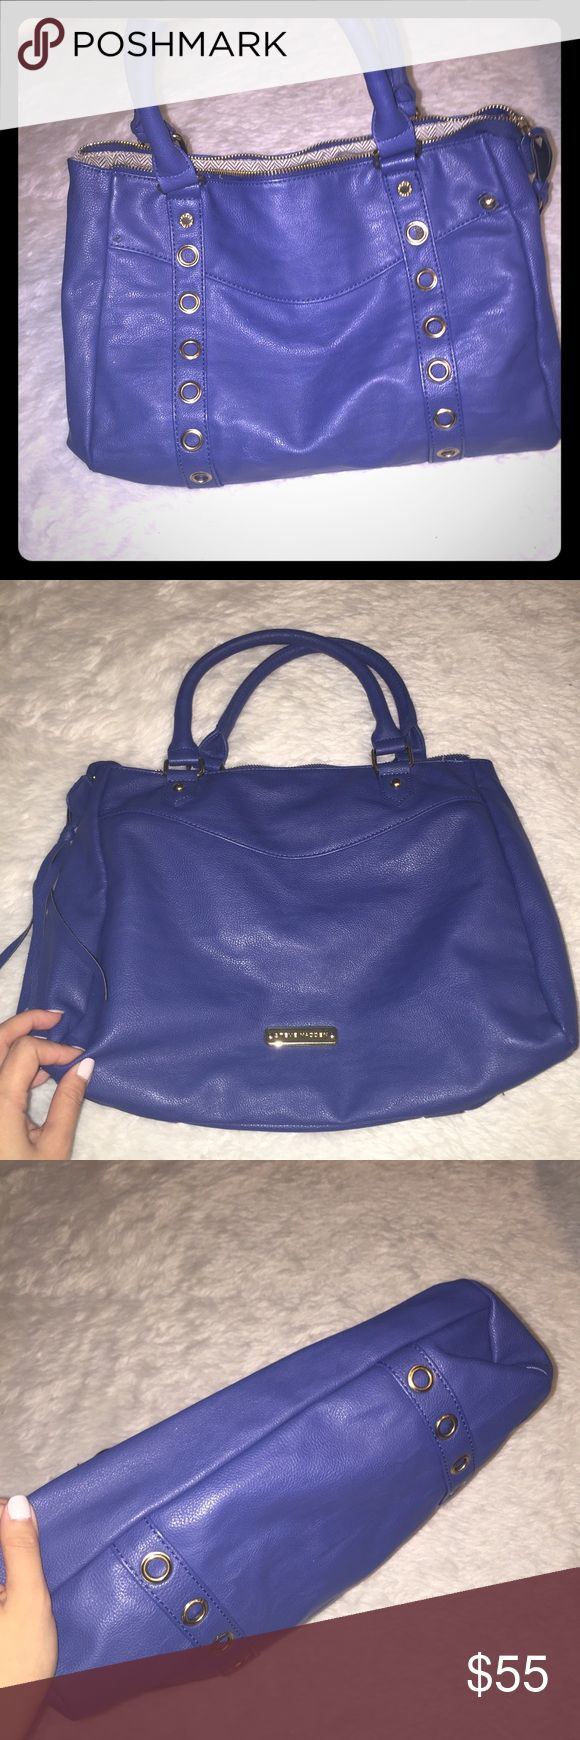 Royal blue Steve Madden purse Very pretty blue color , huge pockets and gold hard ware . East to carry around and use also terrific for going out to parties Steve Madden Bags